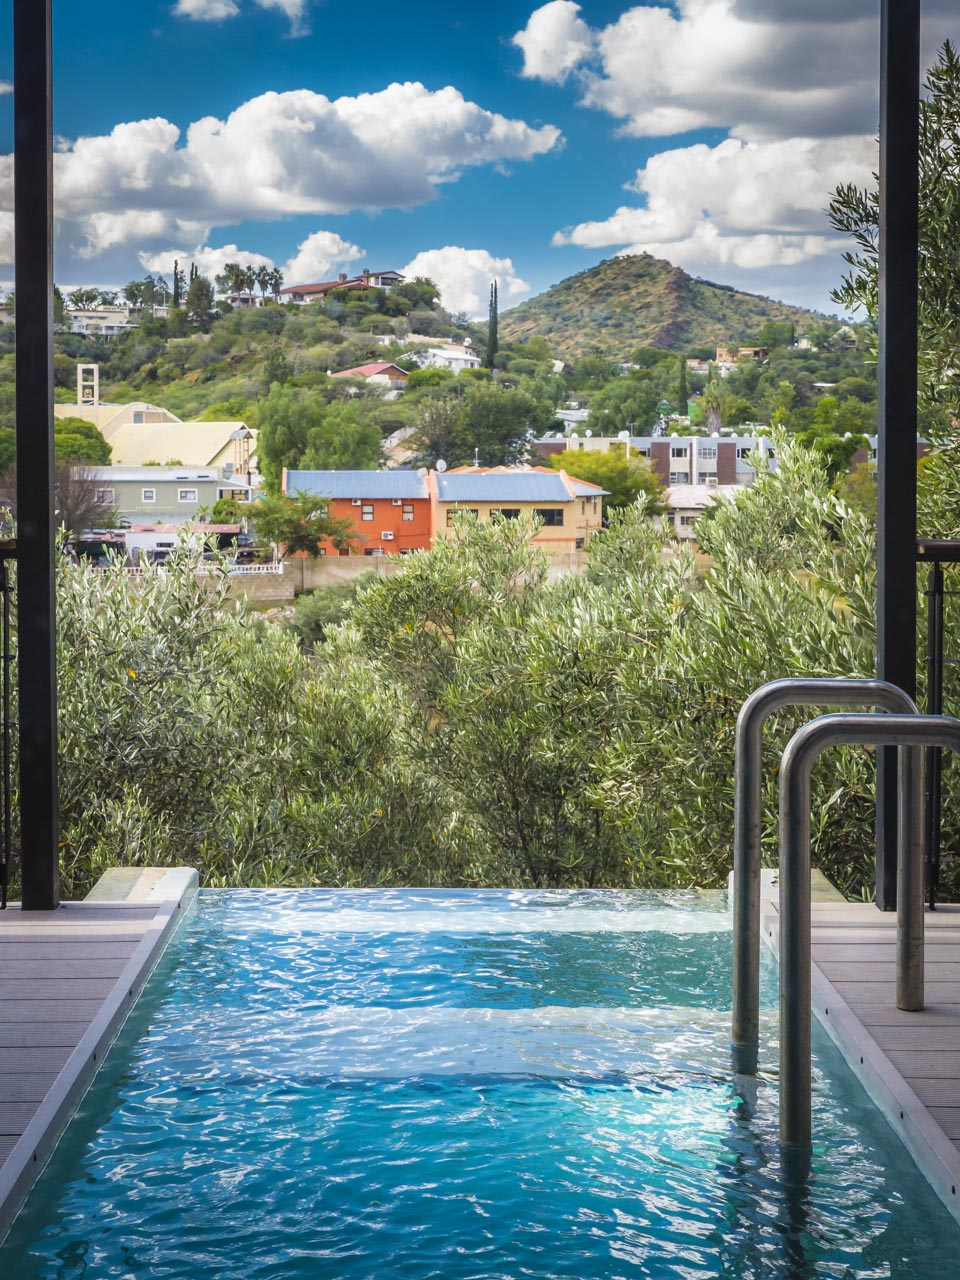 The Olive Exclusive Boutique Hotel